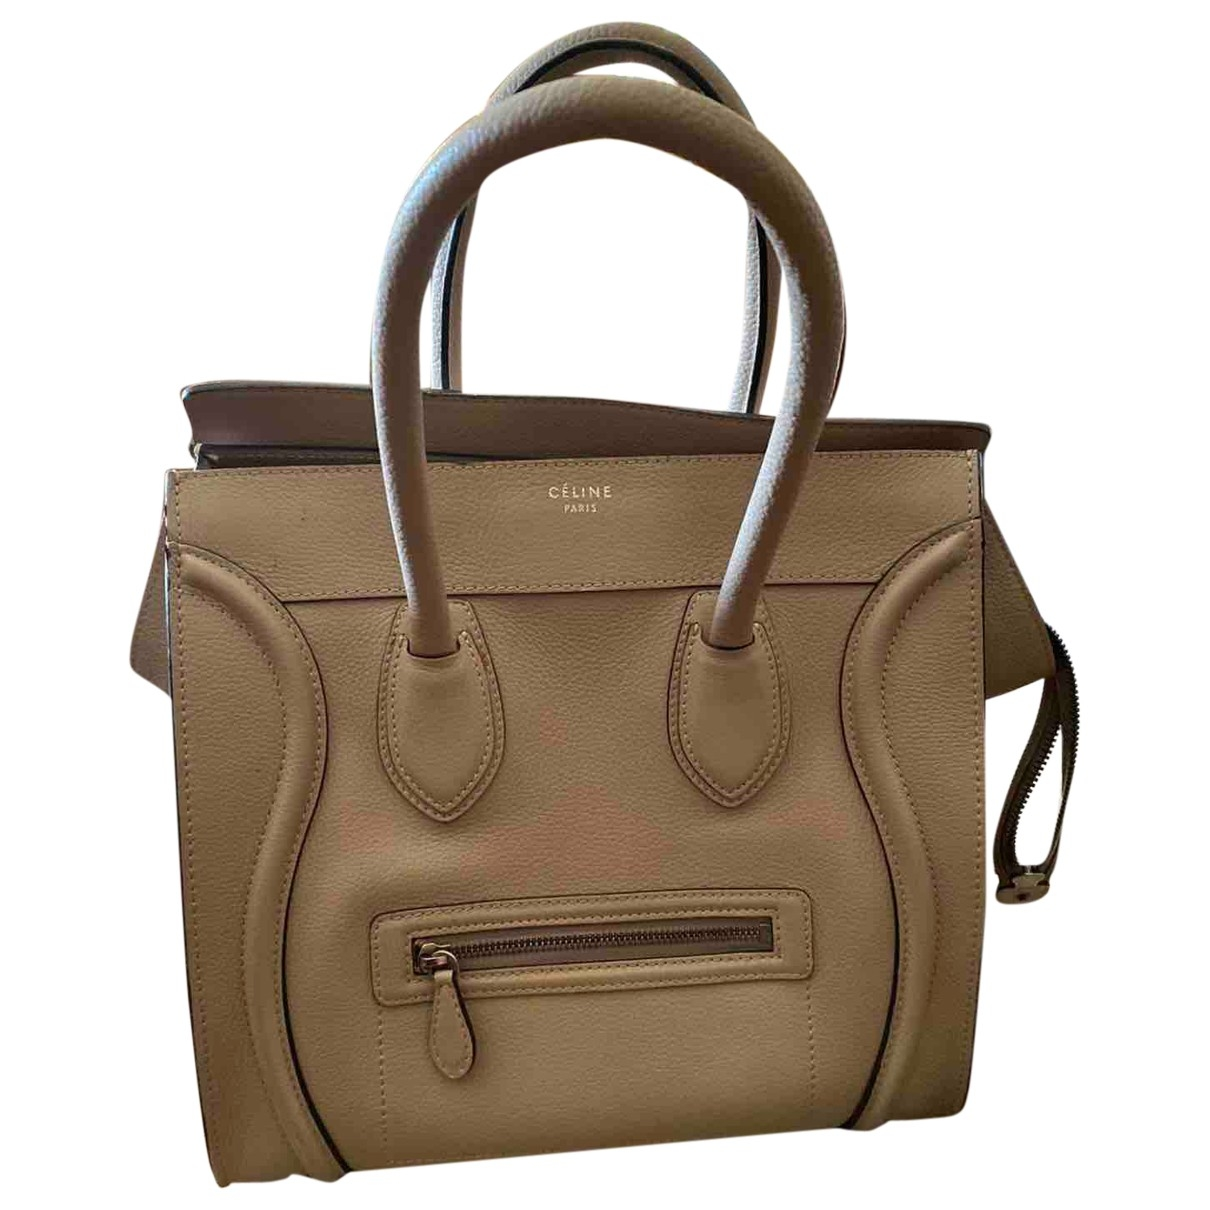 Celine Luggage Beige Leather handbag for Women \N